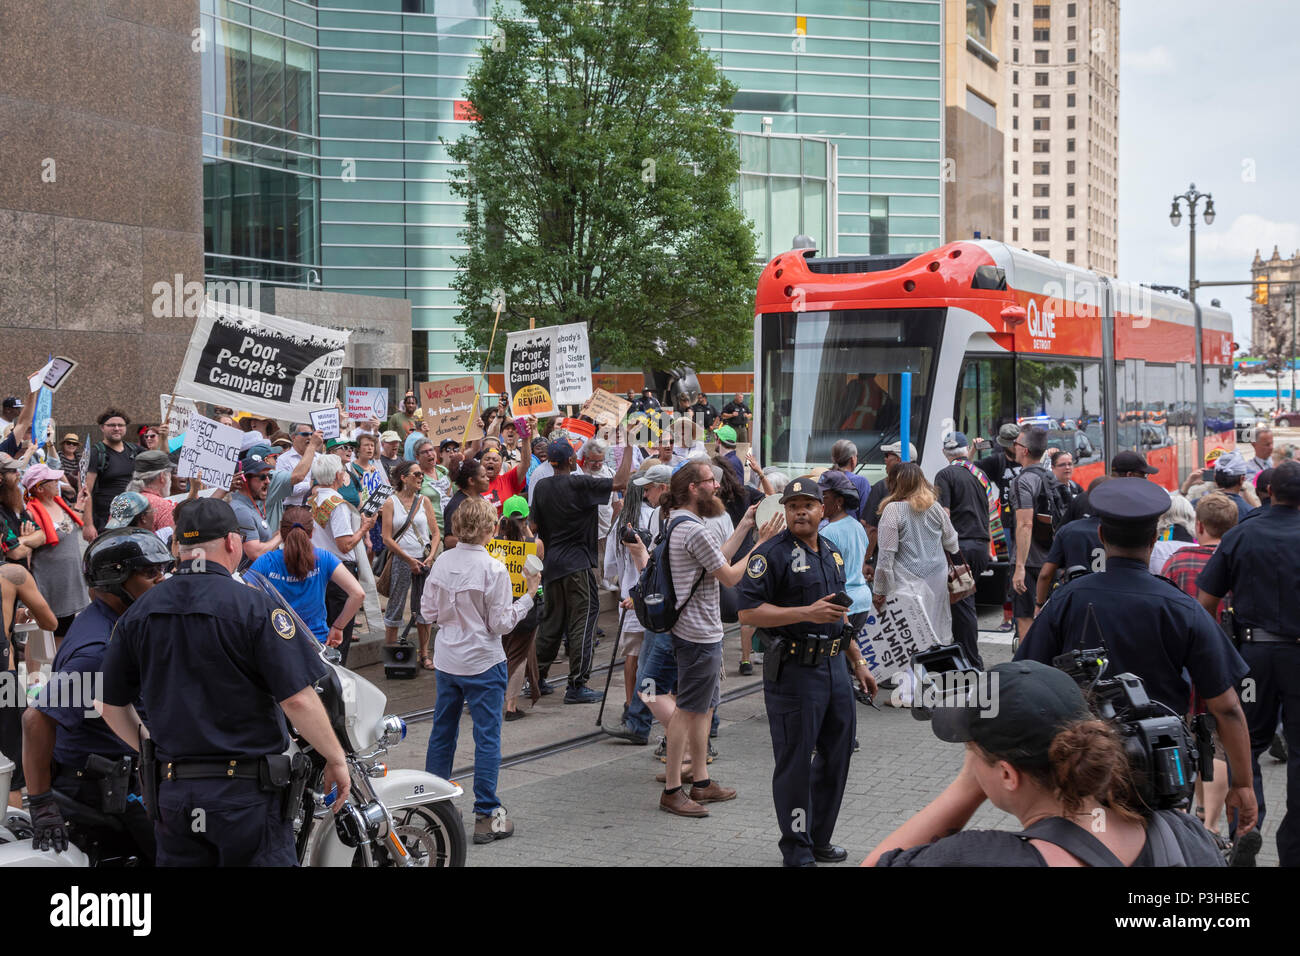 Detroit Michigan Usa 18 June 2018 Several Hundred People Rallied In Detroit To Support The Poor